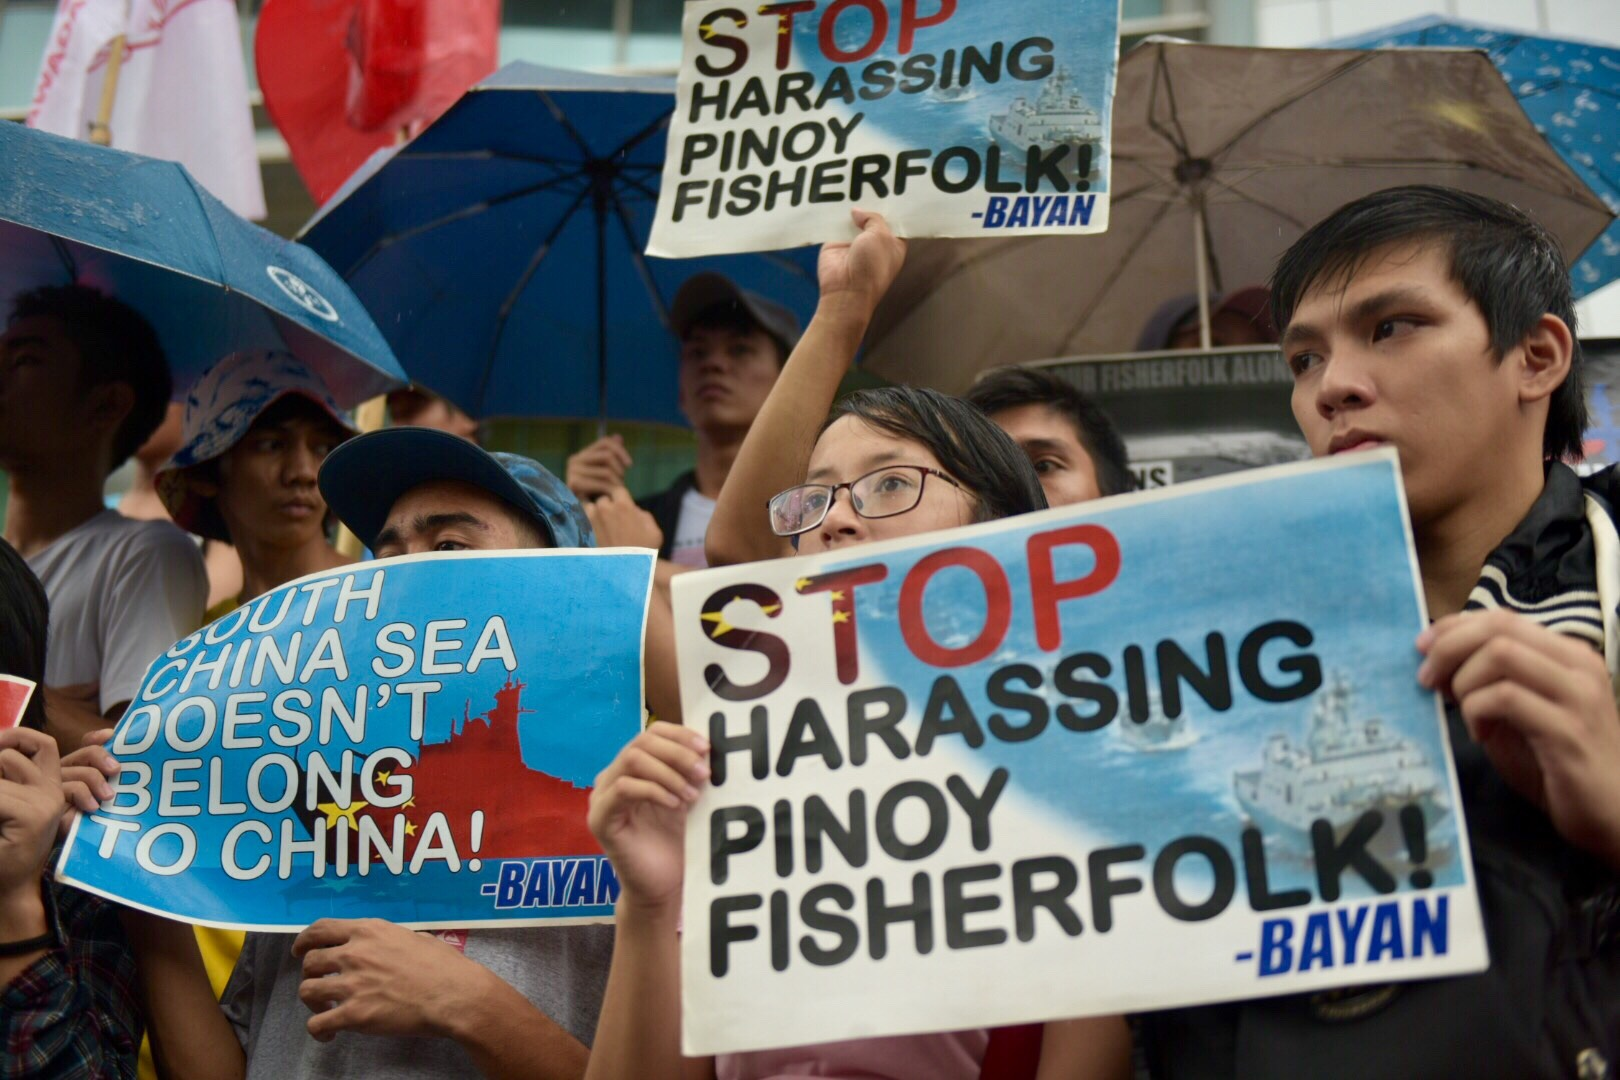 STOP HARASSMENT. Protesters call on Chinese authorities to stop harassing Filipino fishermen on Scarborough Shoal.